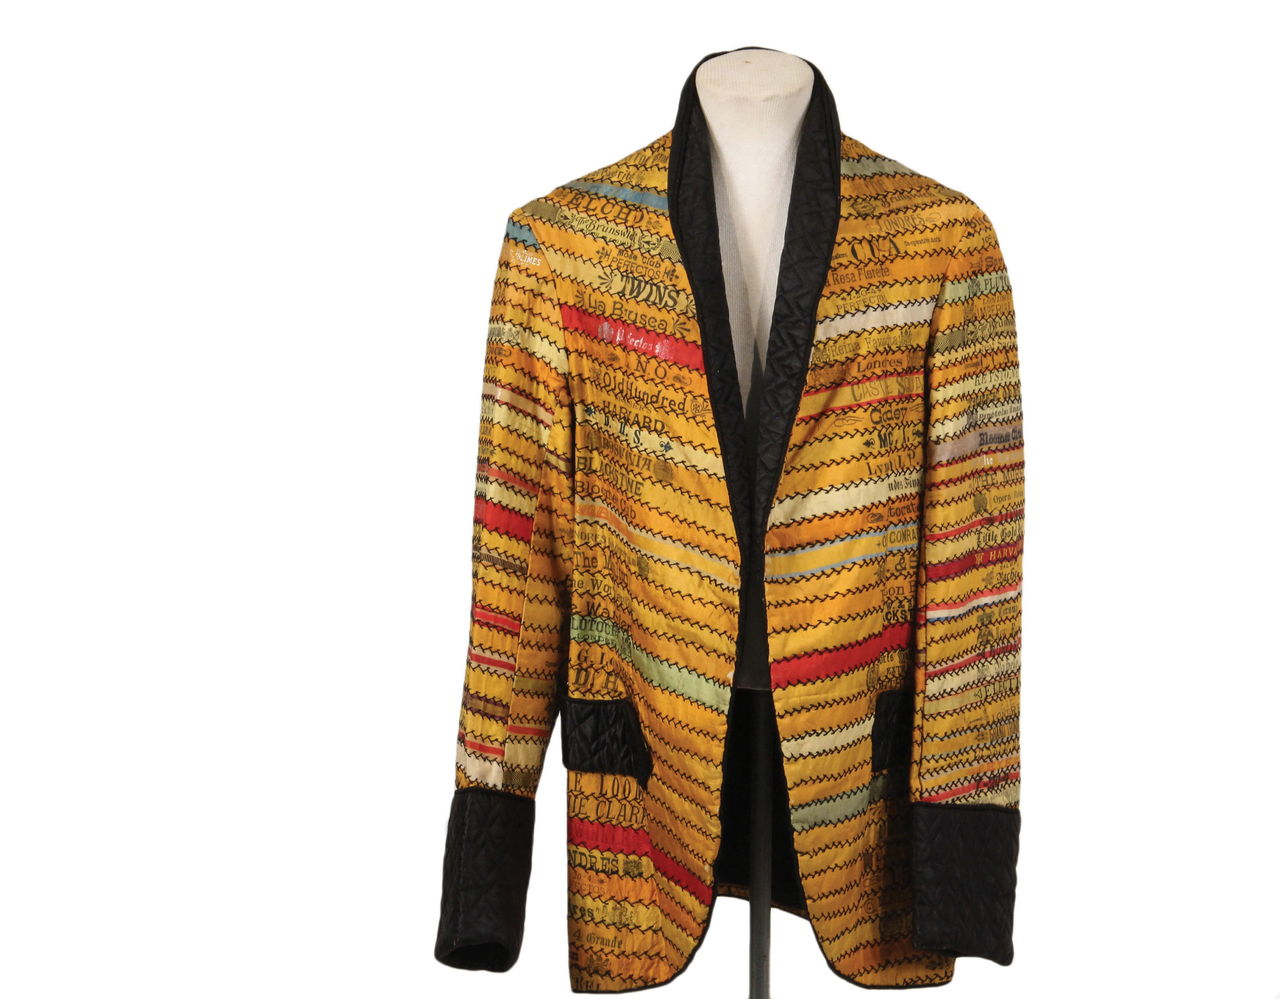 This unique c. 1880s smoking jacket made from silk cigar bands would fit a young boy. It sold at an auction in Thomaston, Maine for $1,755.